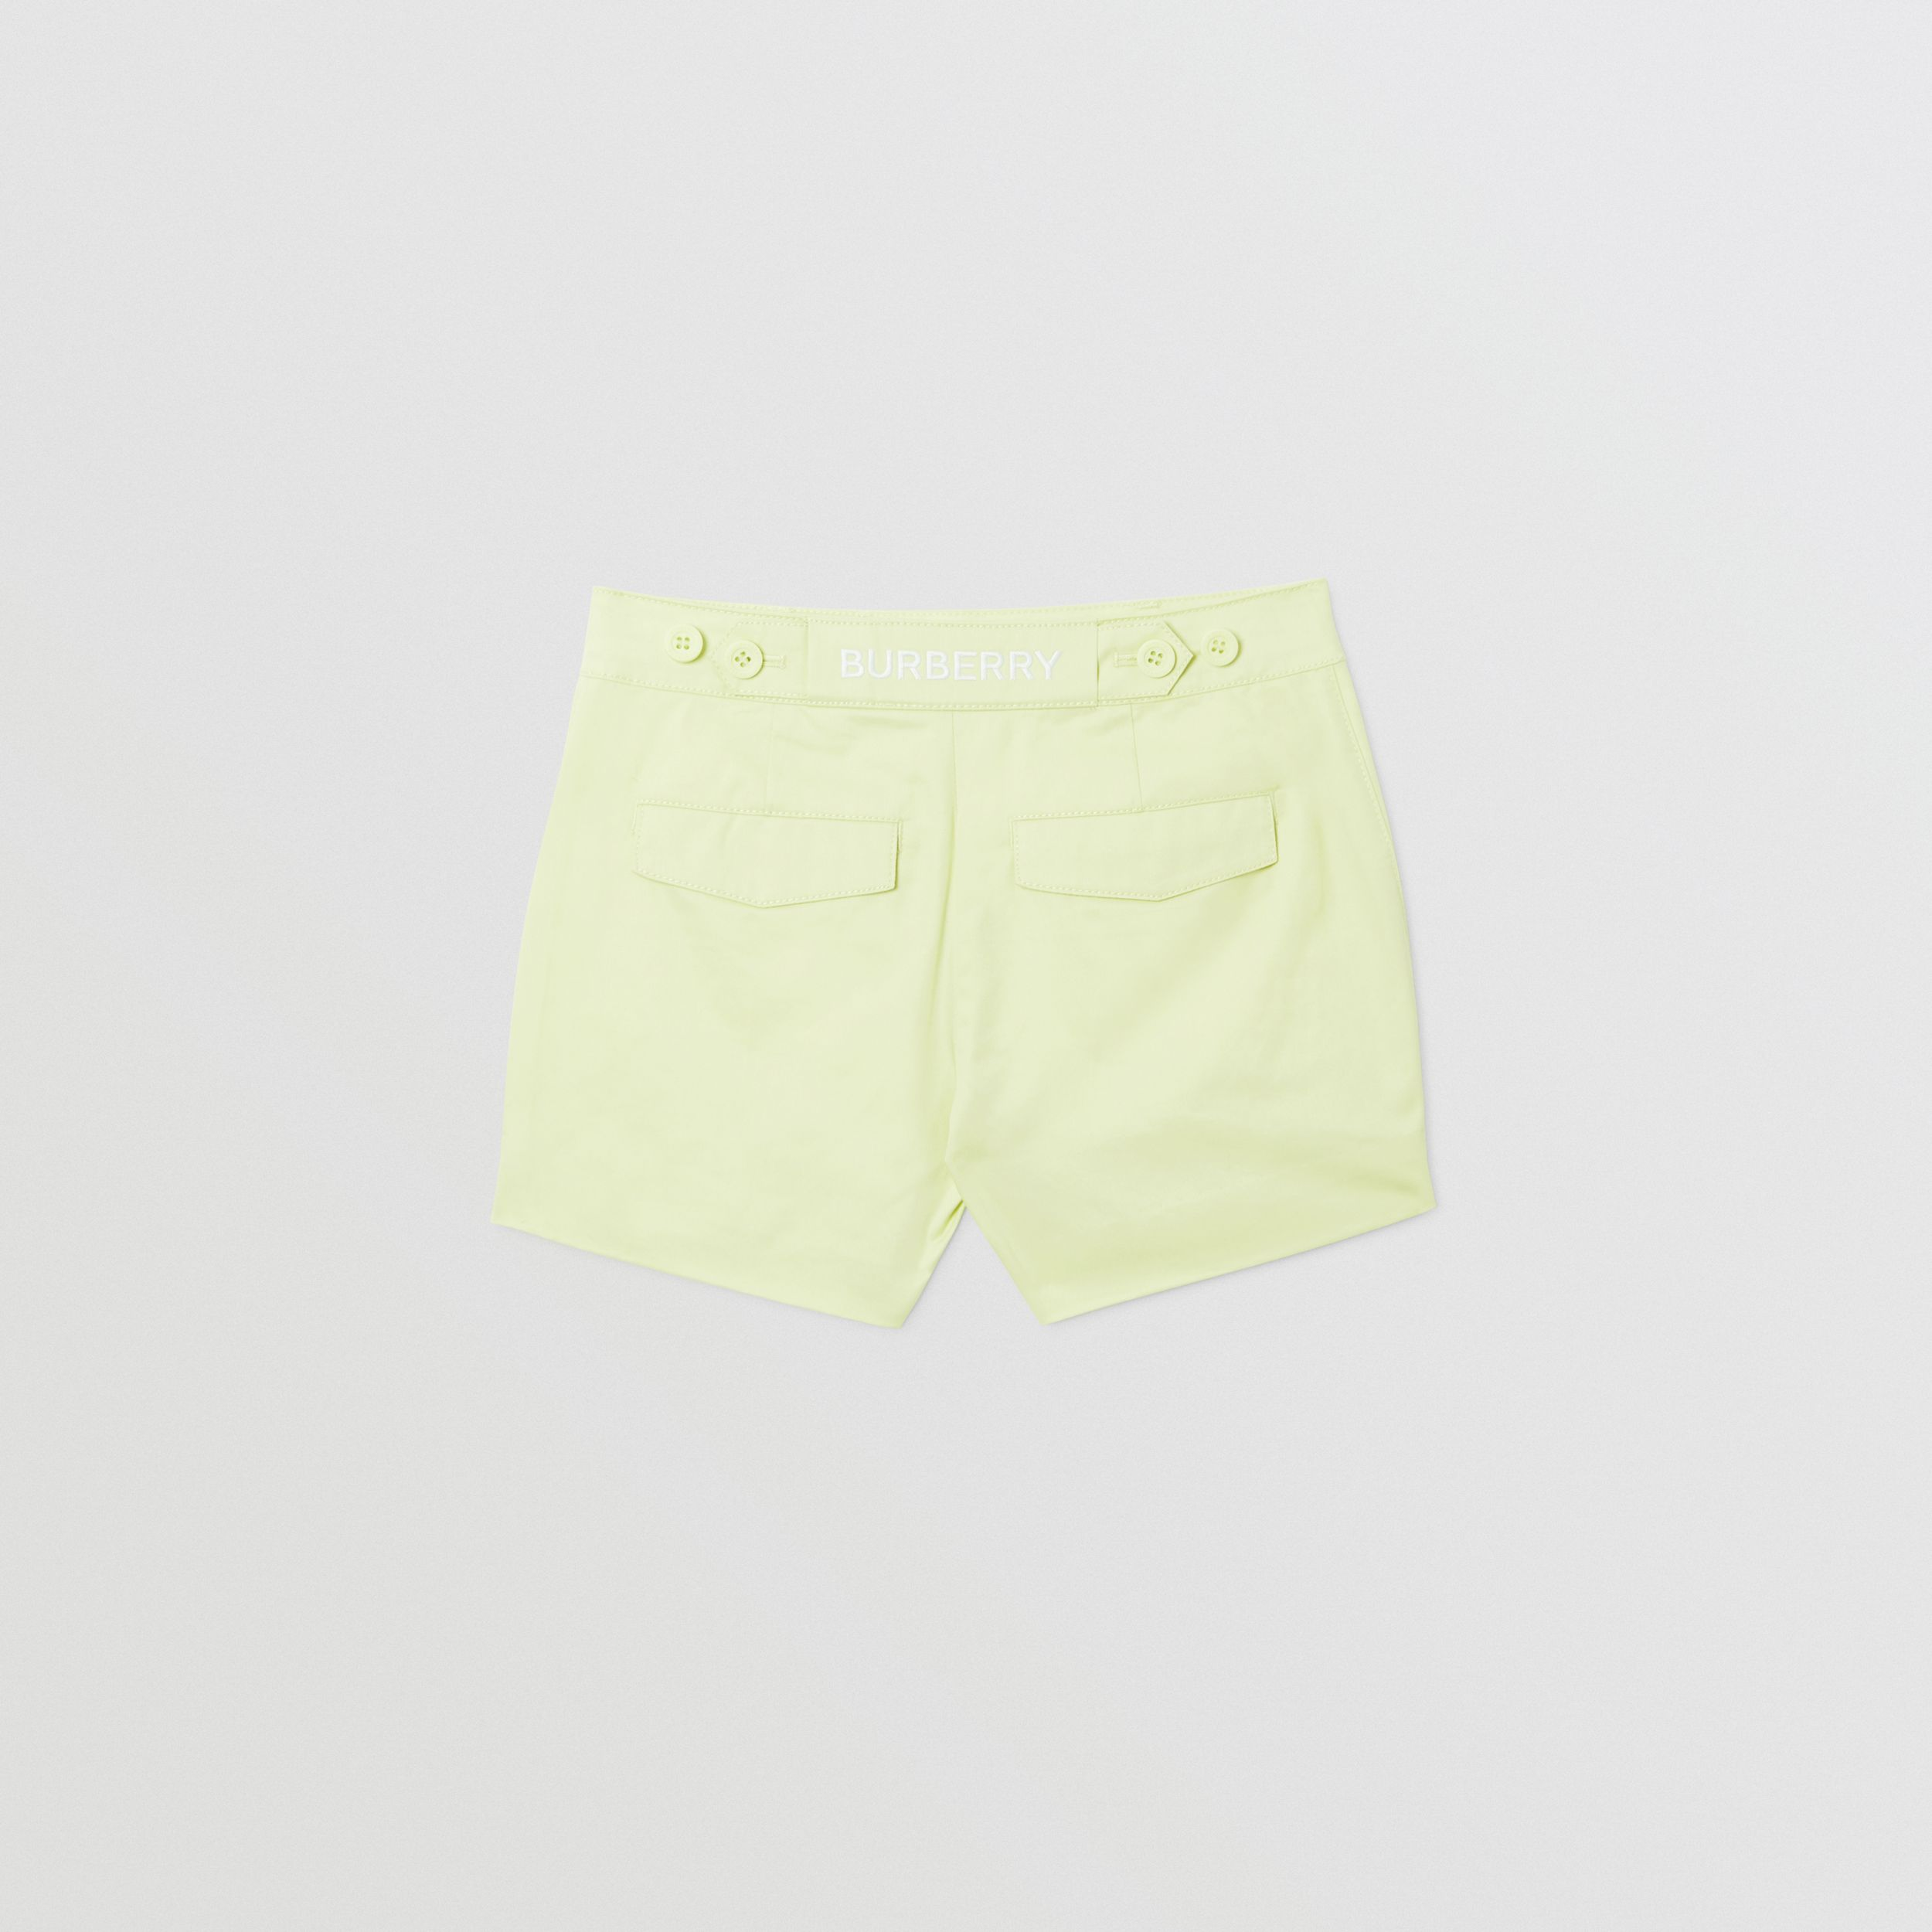 Embroidered Logo Cotton Shorts in Pistachio | Burberry - 4